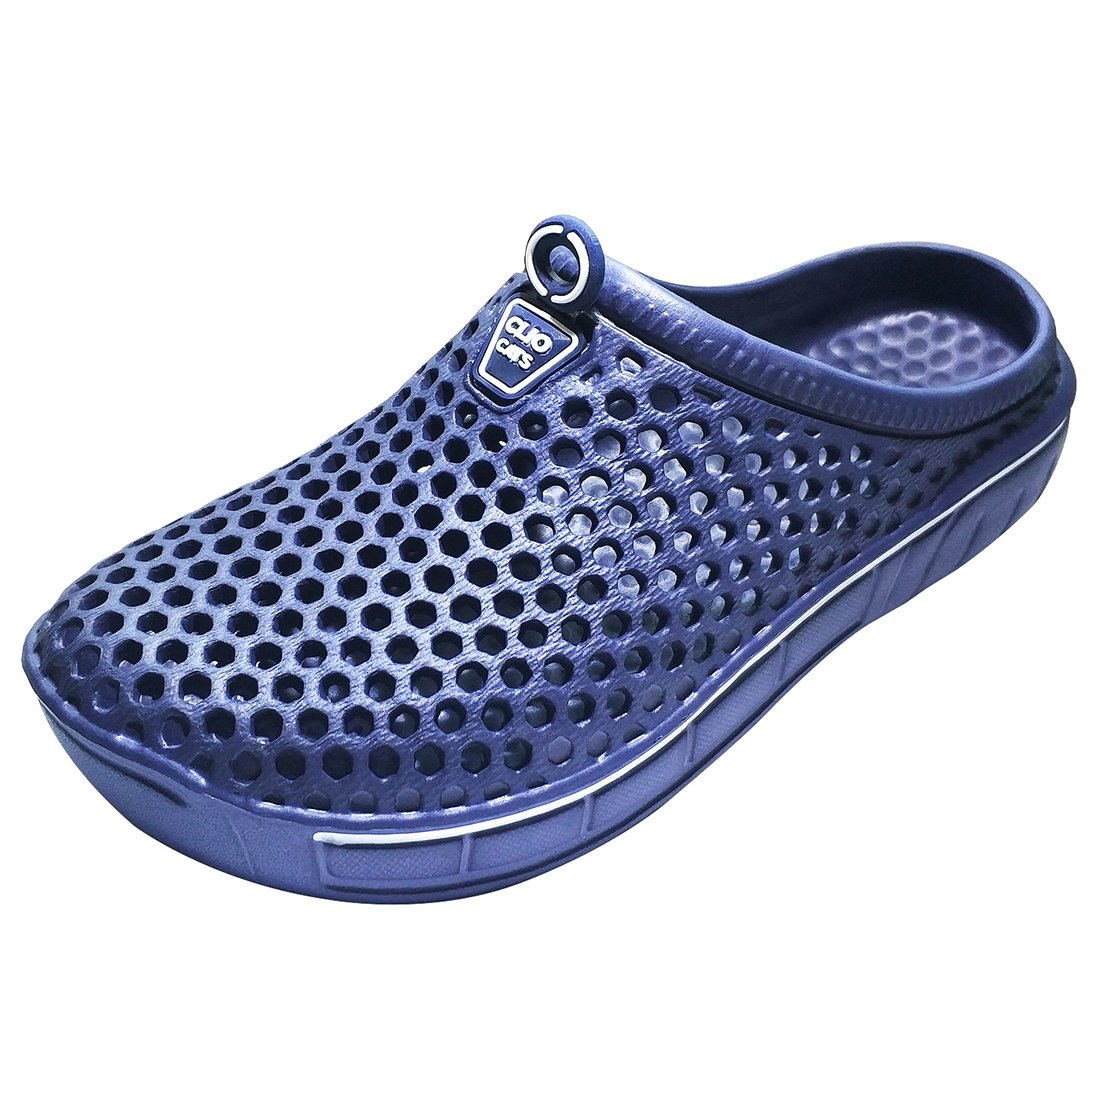 IVAO Unisex Garden Clog Shoes Sandal Quick Drying Navy 9 B(M) US Women/8 D(M) US Men by IVAO